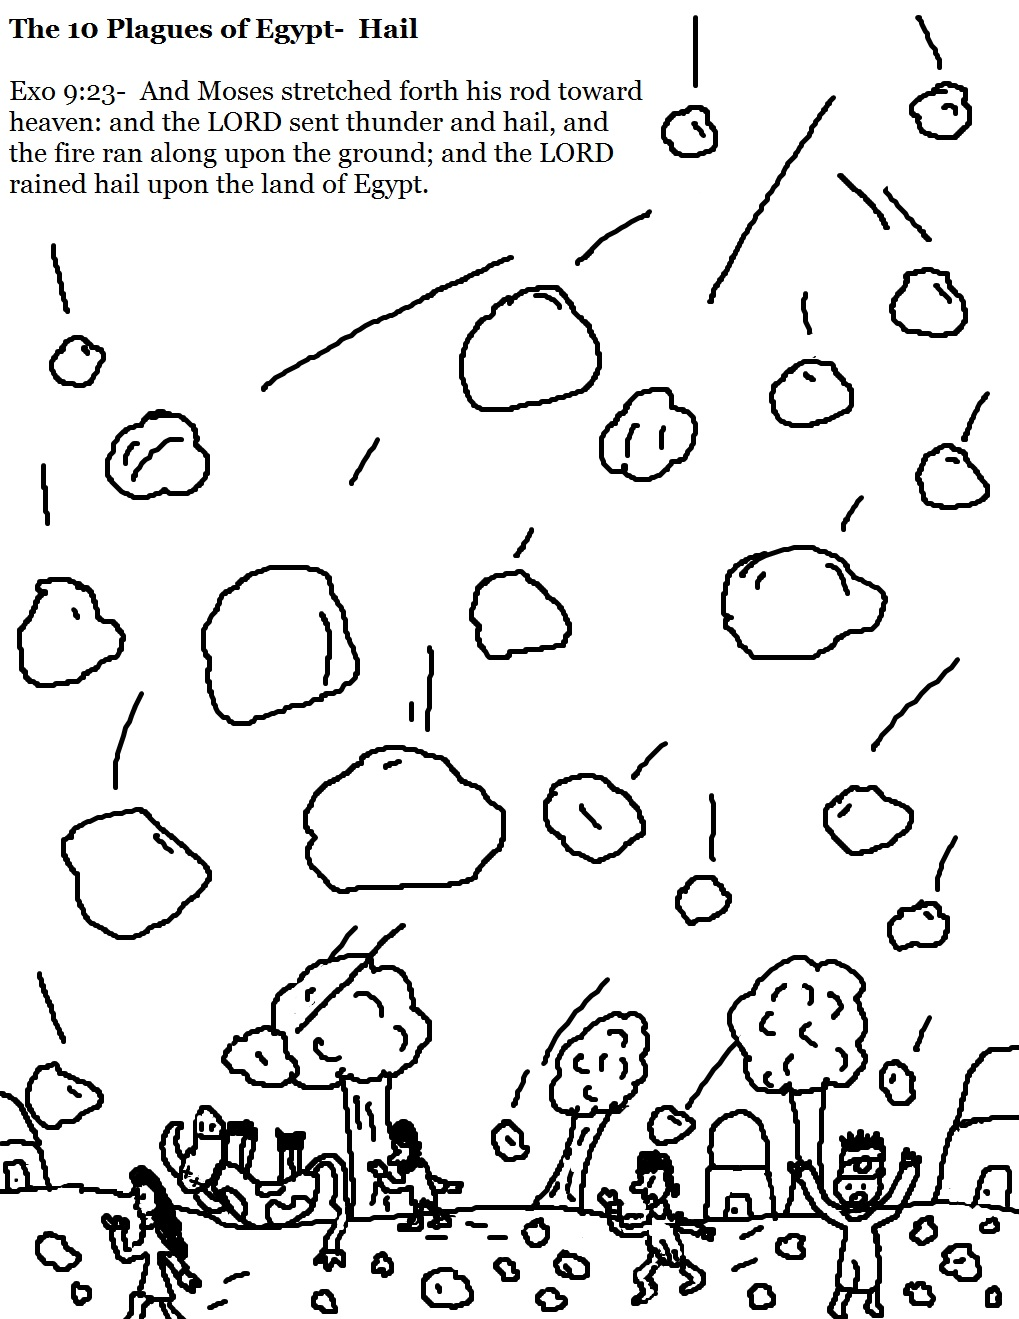 10 plagues on egypt coloring pages photo - 1